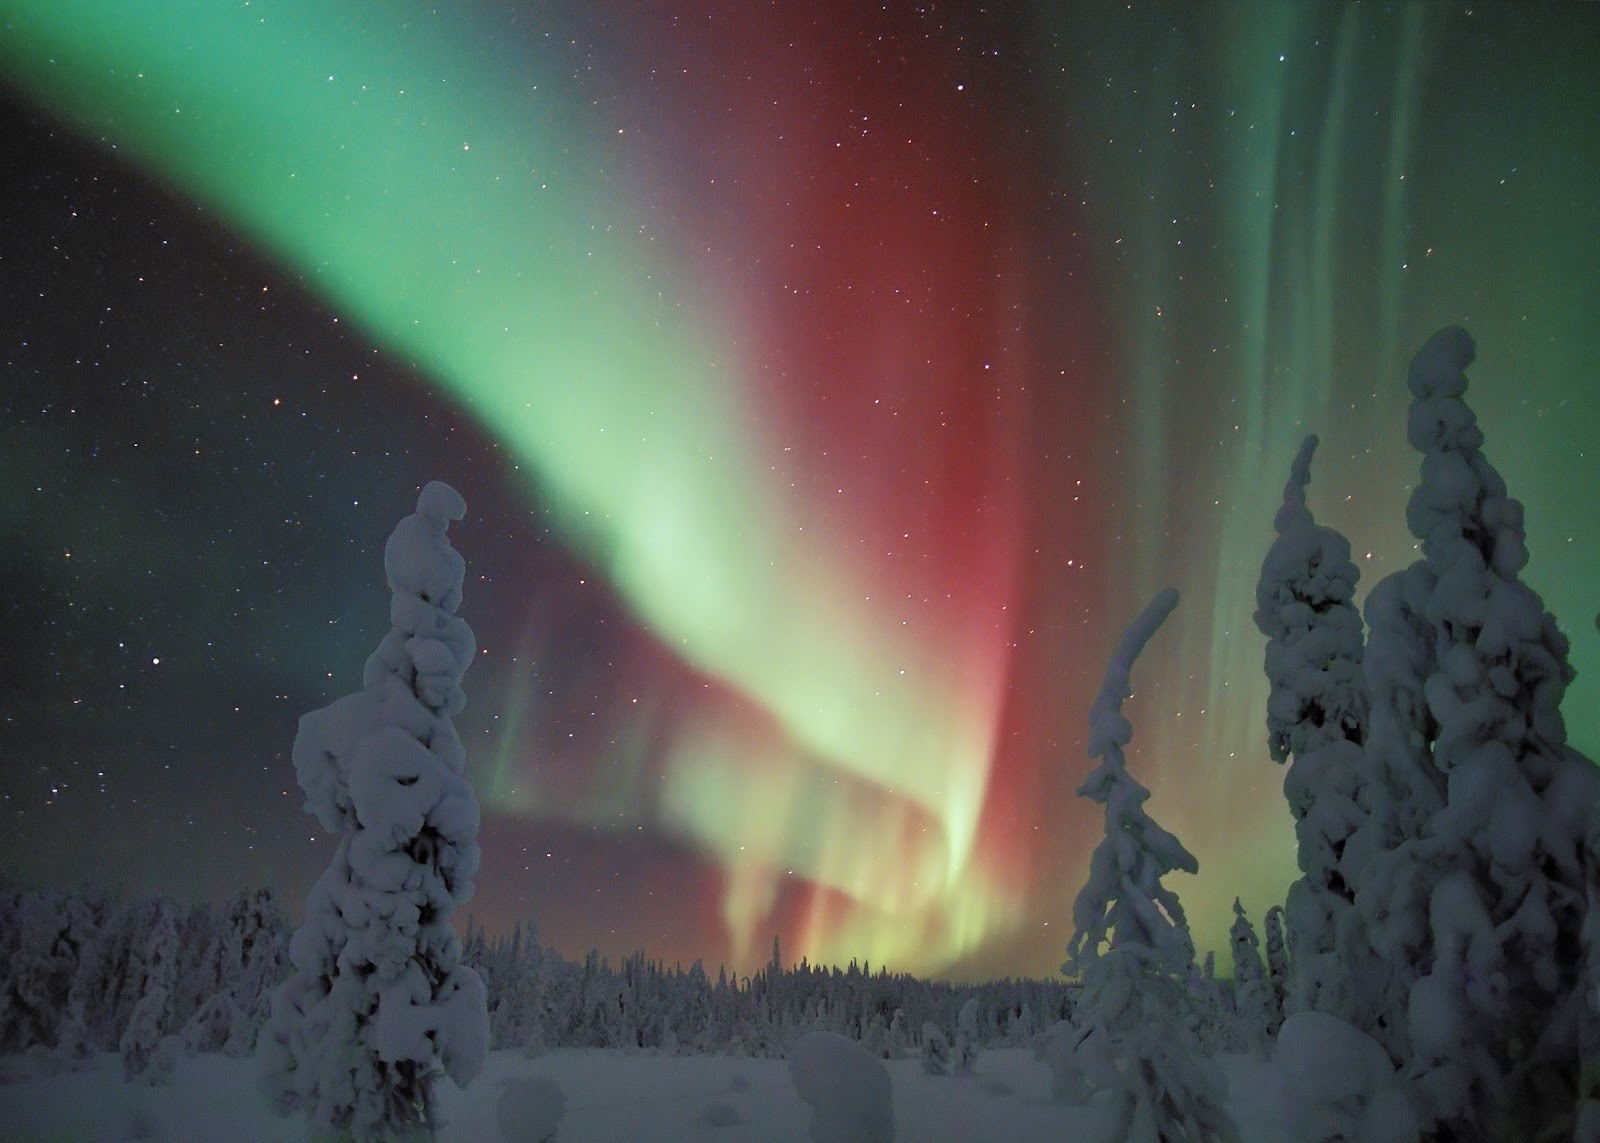 Northern_Lights_in_Snowy_Forest.jpg